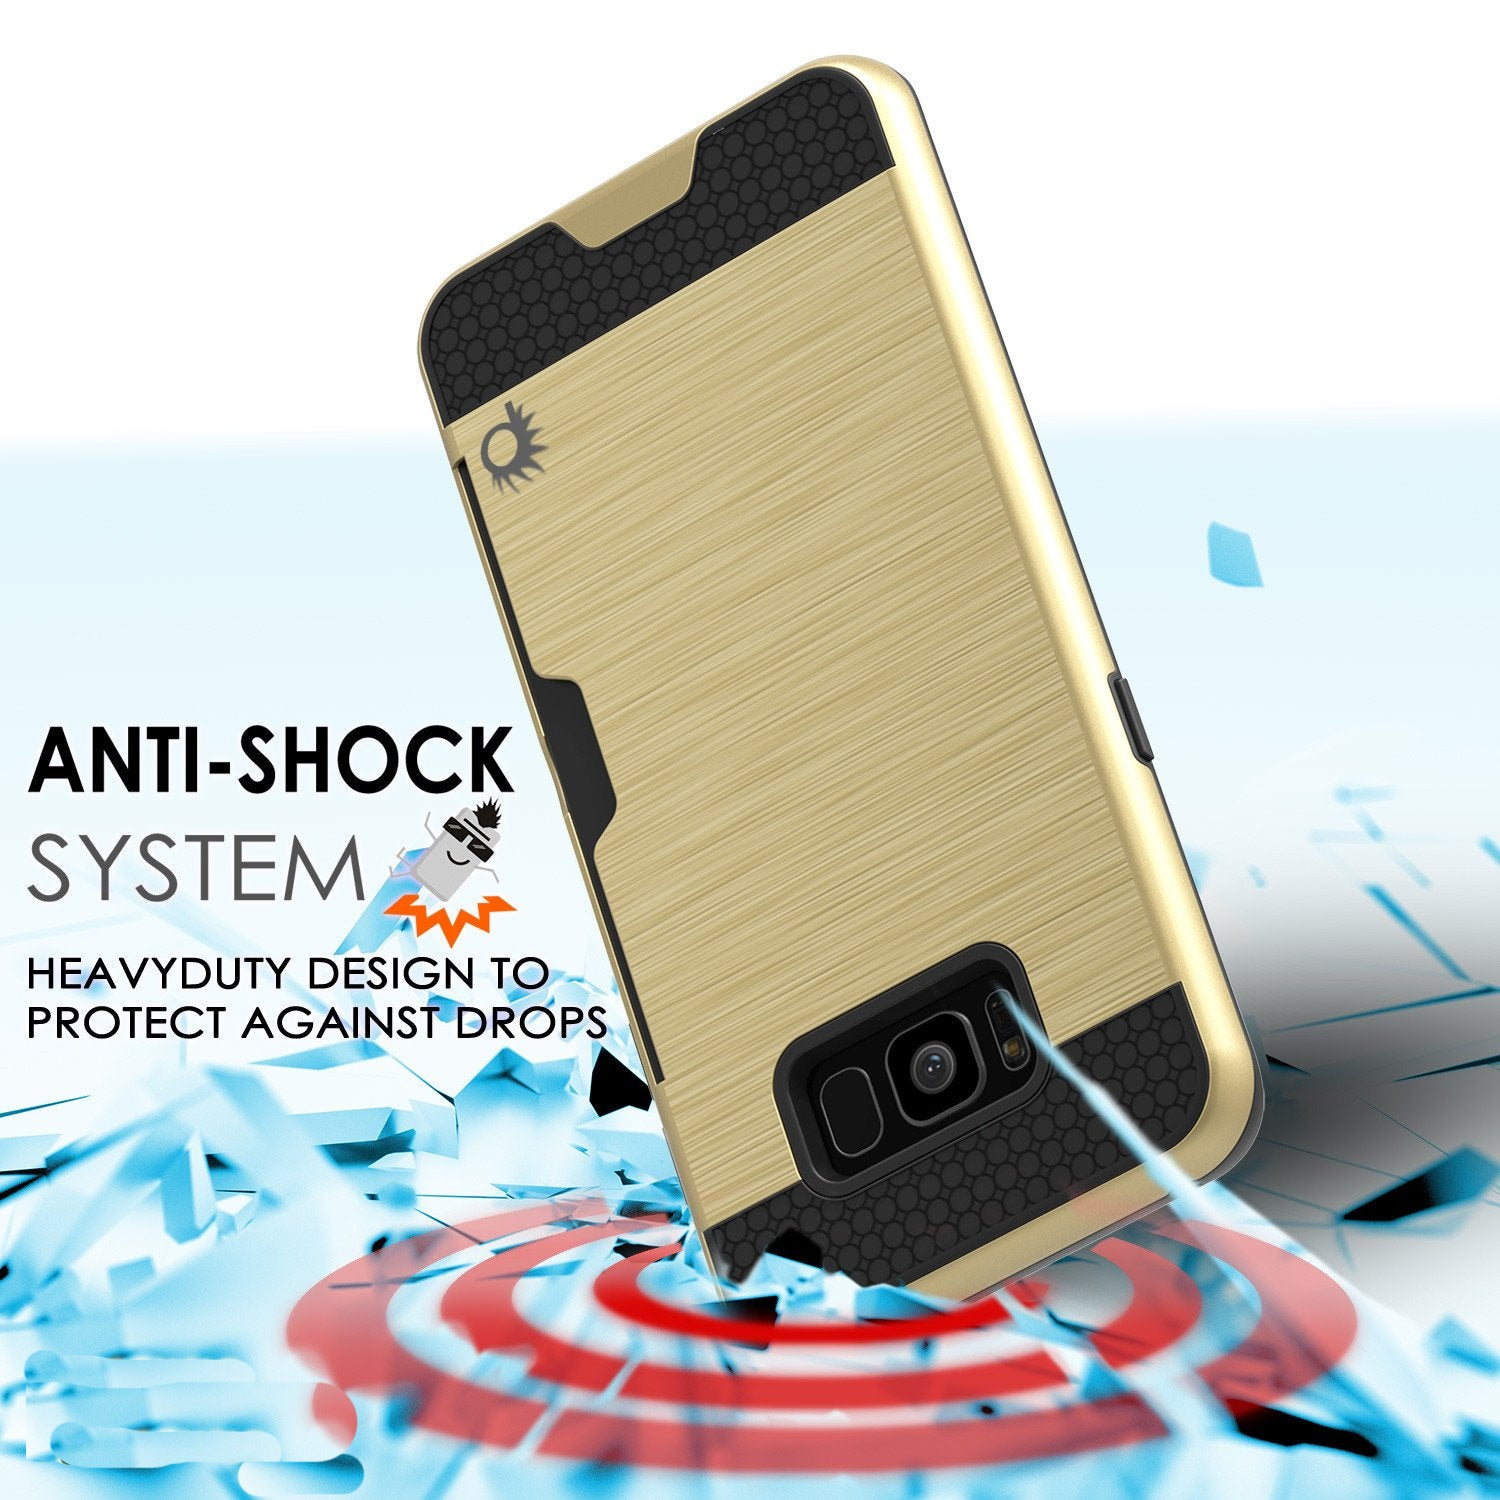 Galaxy S8 Case, PUNKcase [SLOT Series] Dual-Layer Armor Cover w/Integrated Anti-Shock System, Credit Card Slot & Screen Protector [Gold]